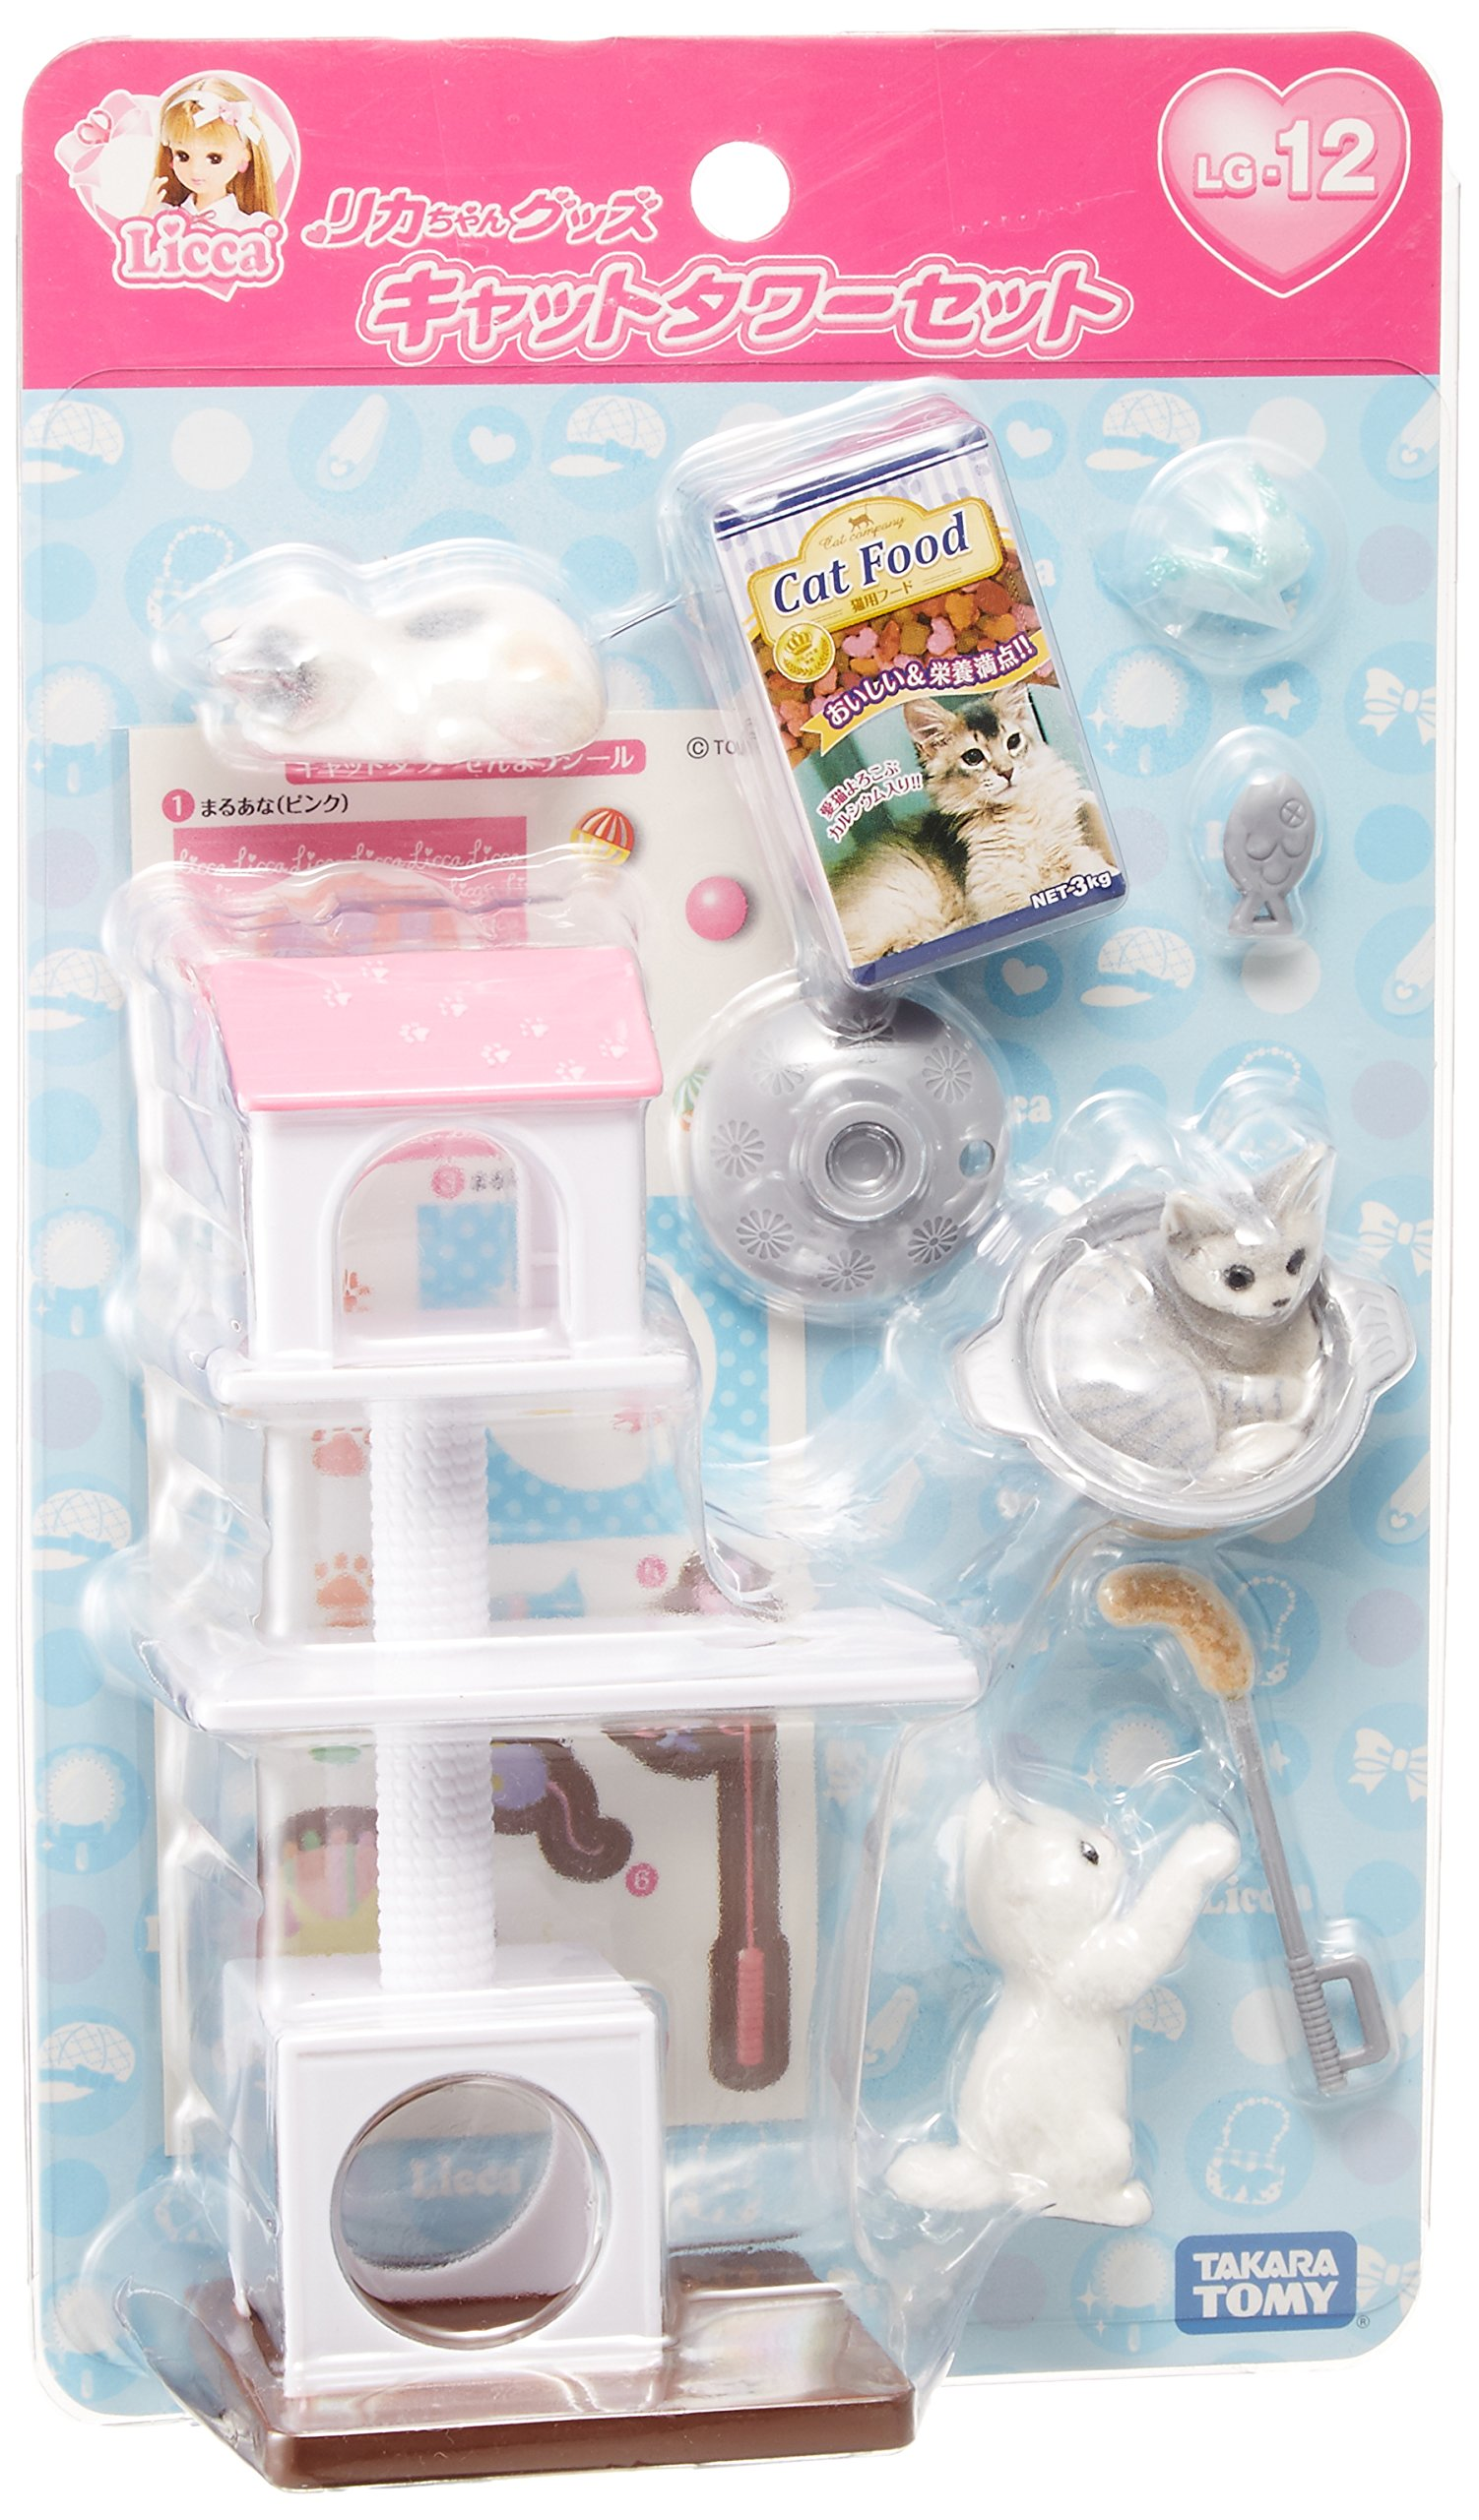 Takara Tomy Licca Doll Cat Tower Set New Japan